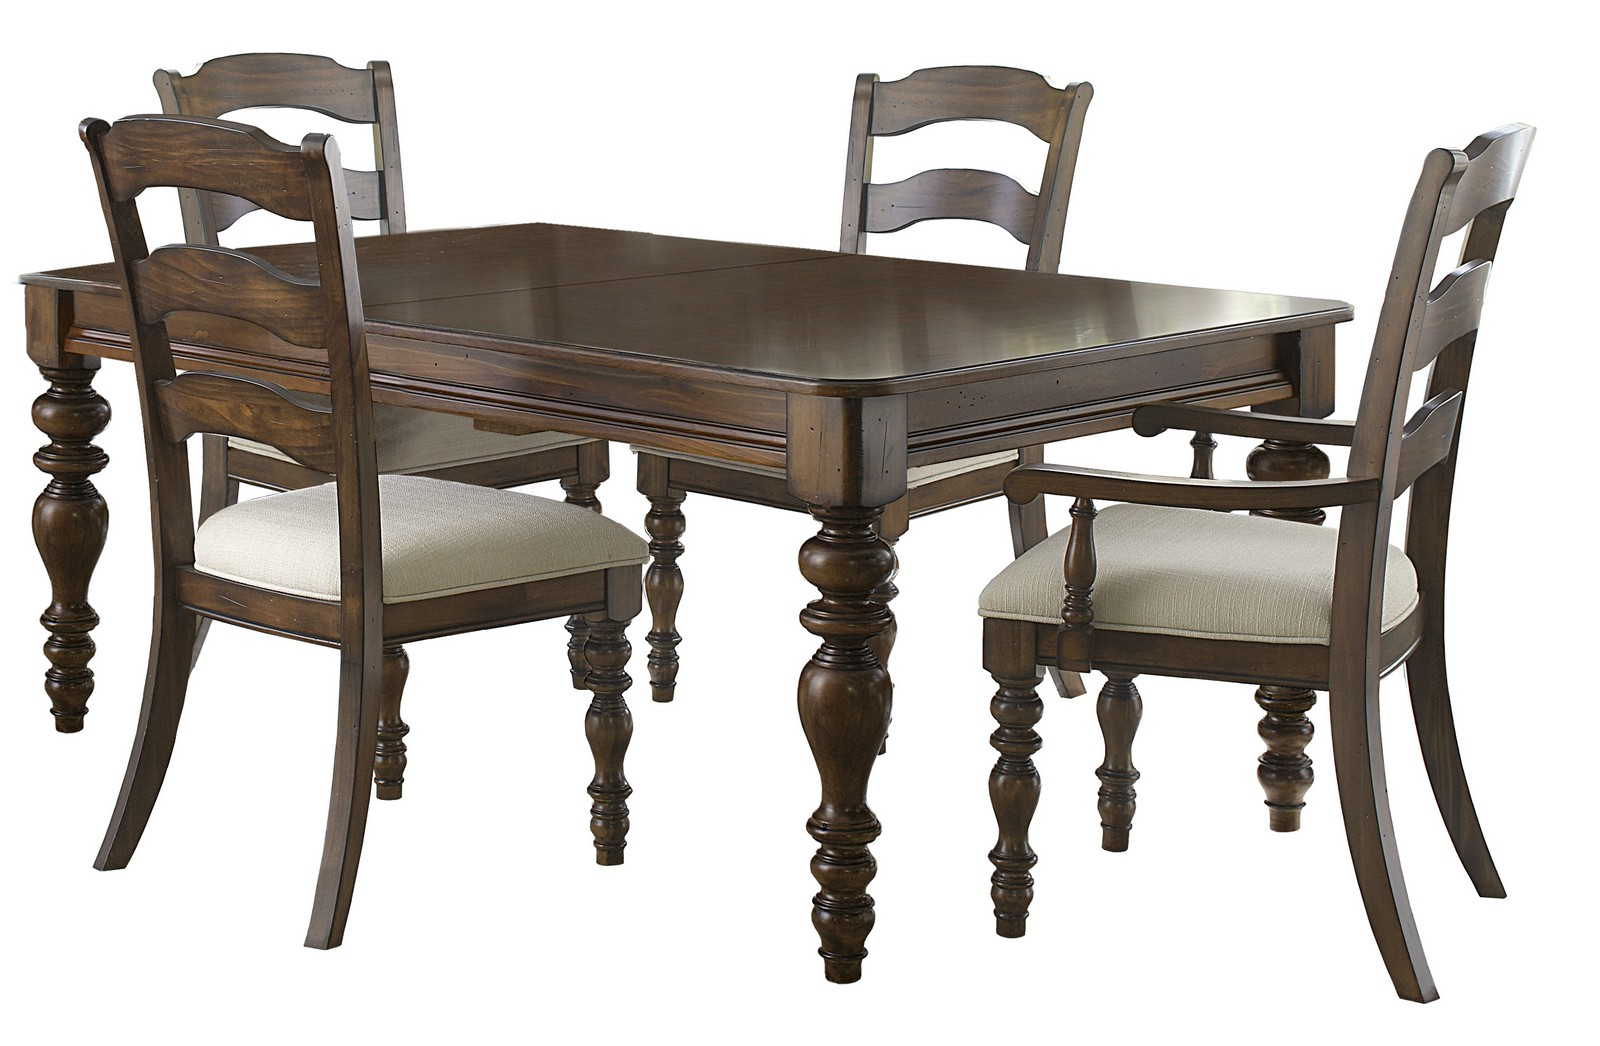 Hillsdale Pine Island 5 Pc Dining Set with Ladder Back Side Chairs - Dark Pine